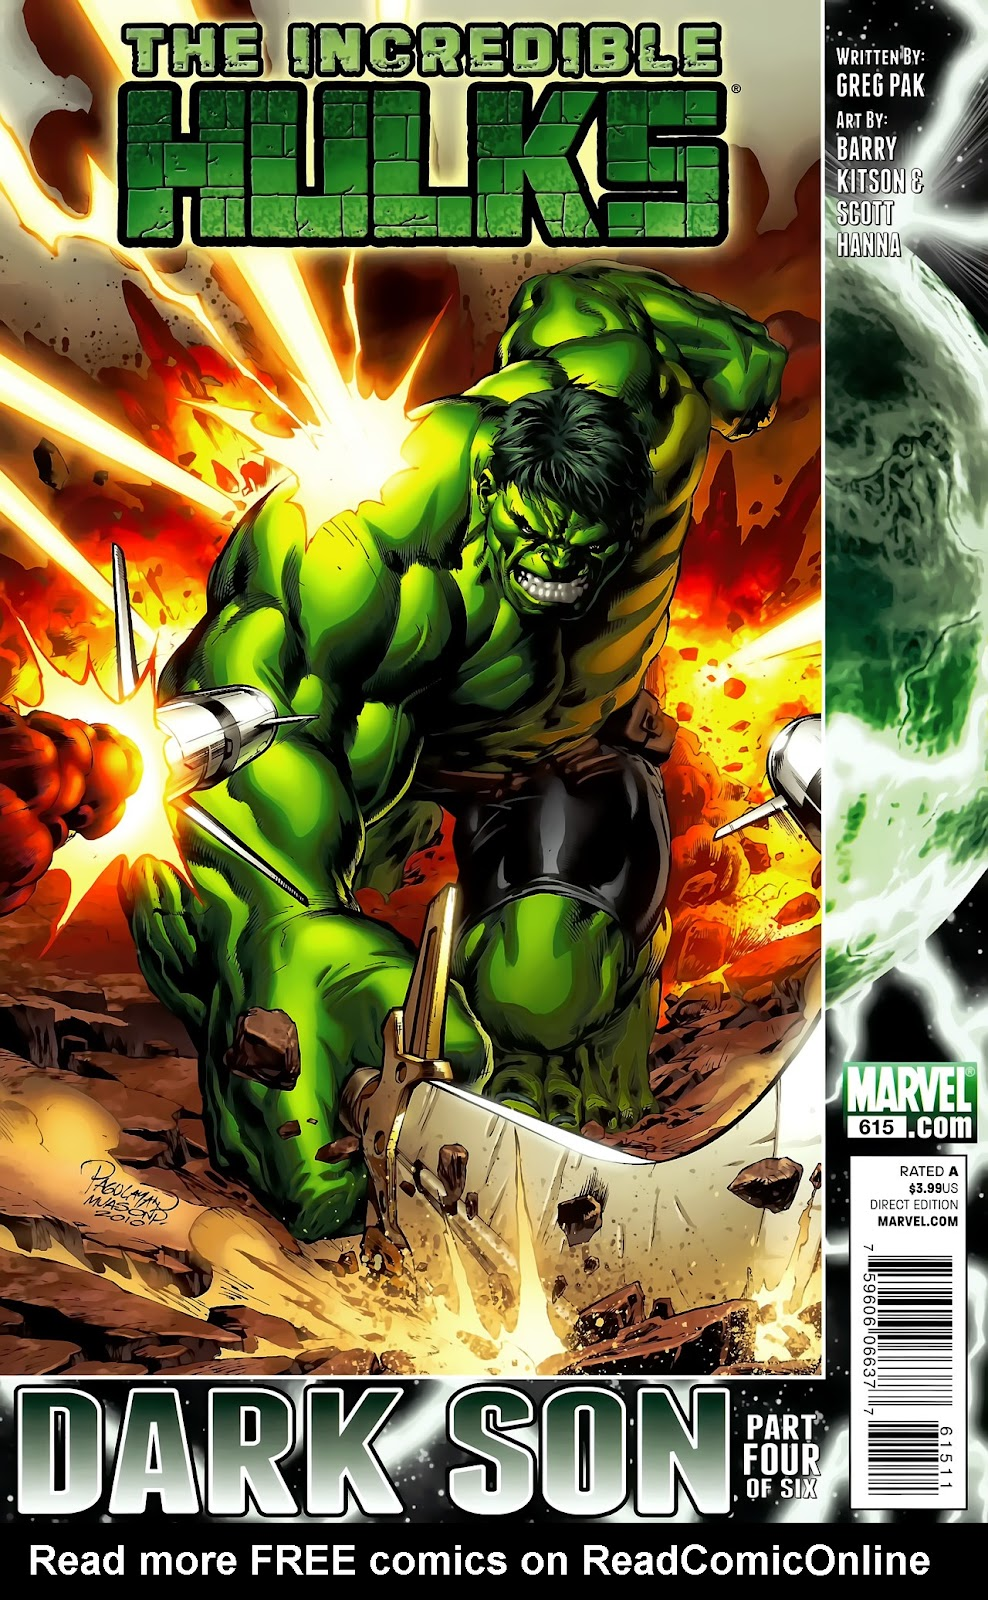 Incredible Hulks (2010) Issue #615 #5 - English 1